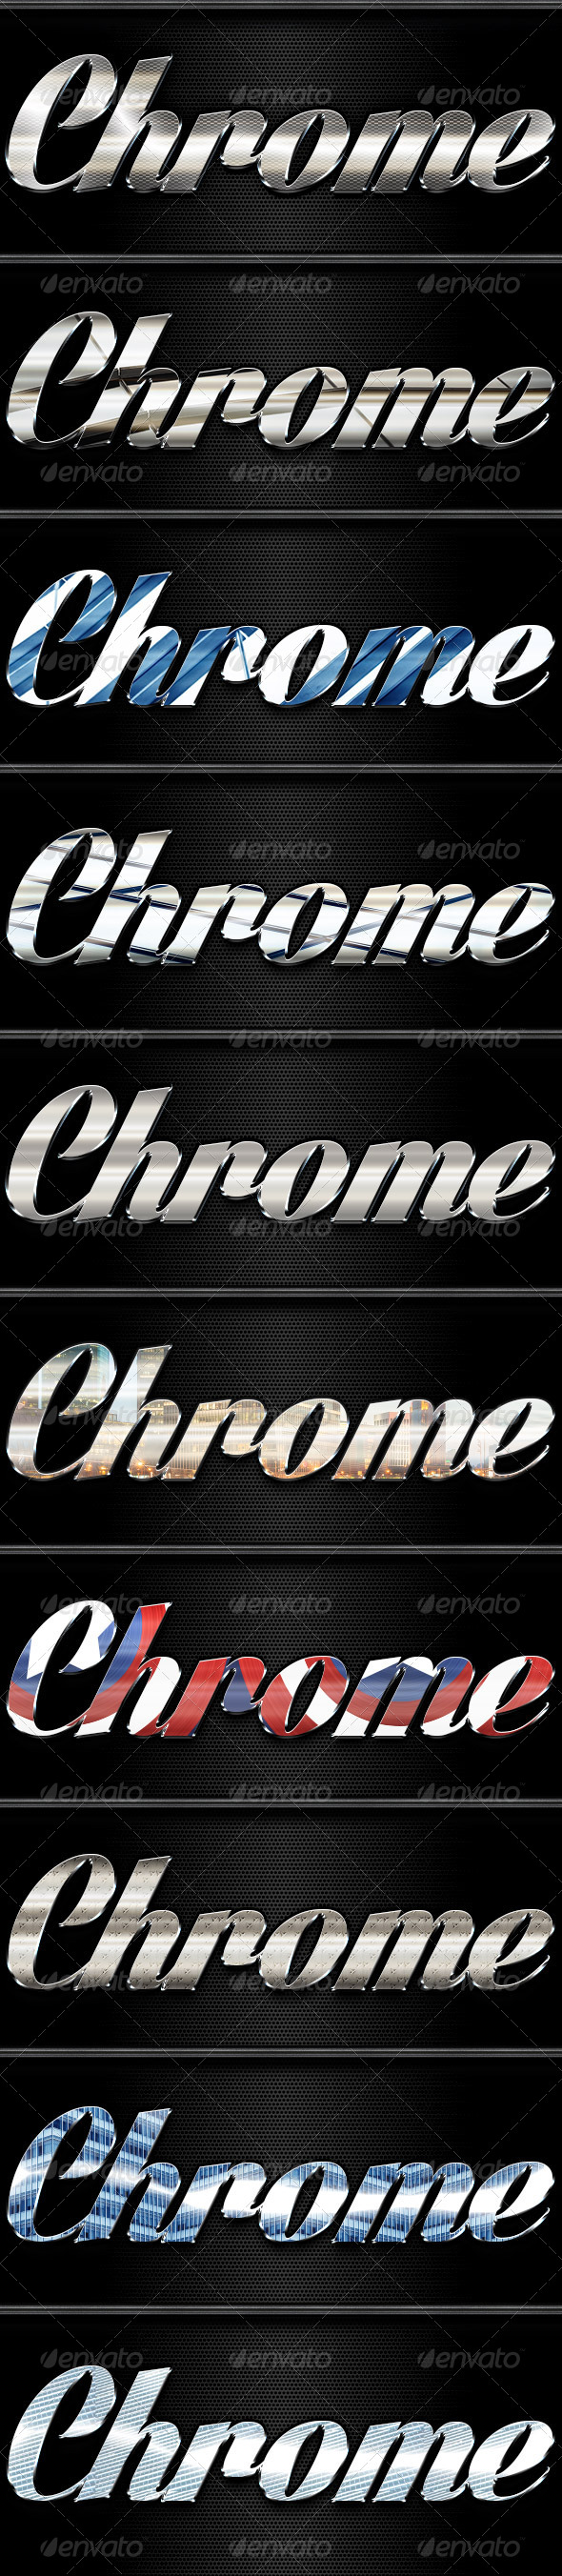 GraphicRiver 10 Chrome Styles 6460746